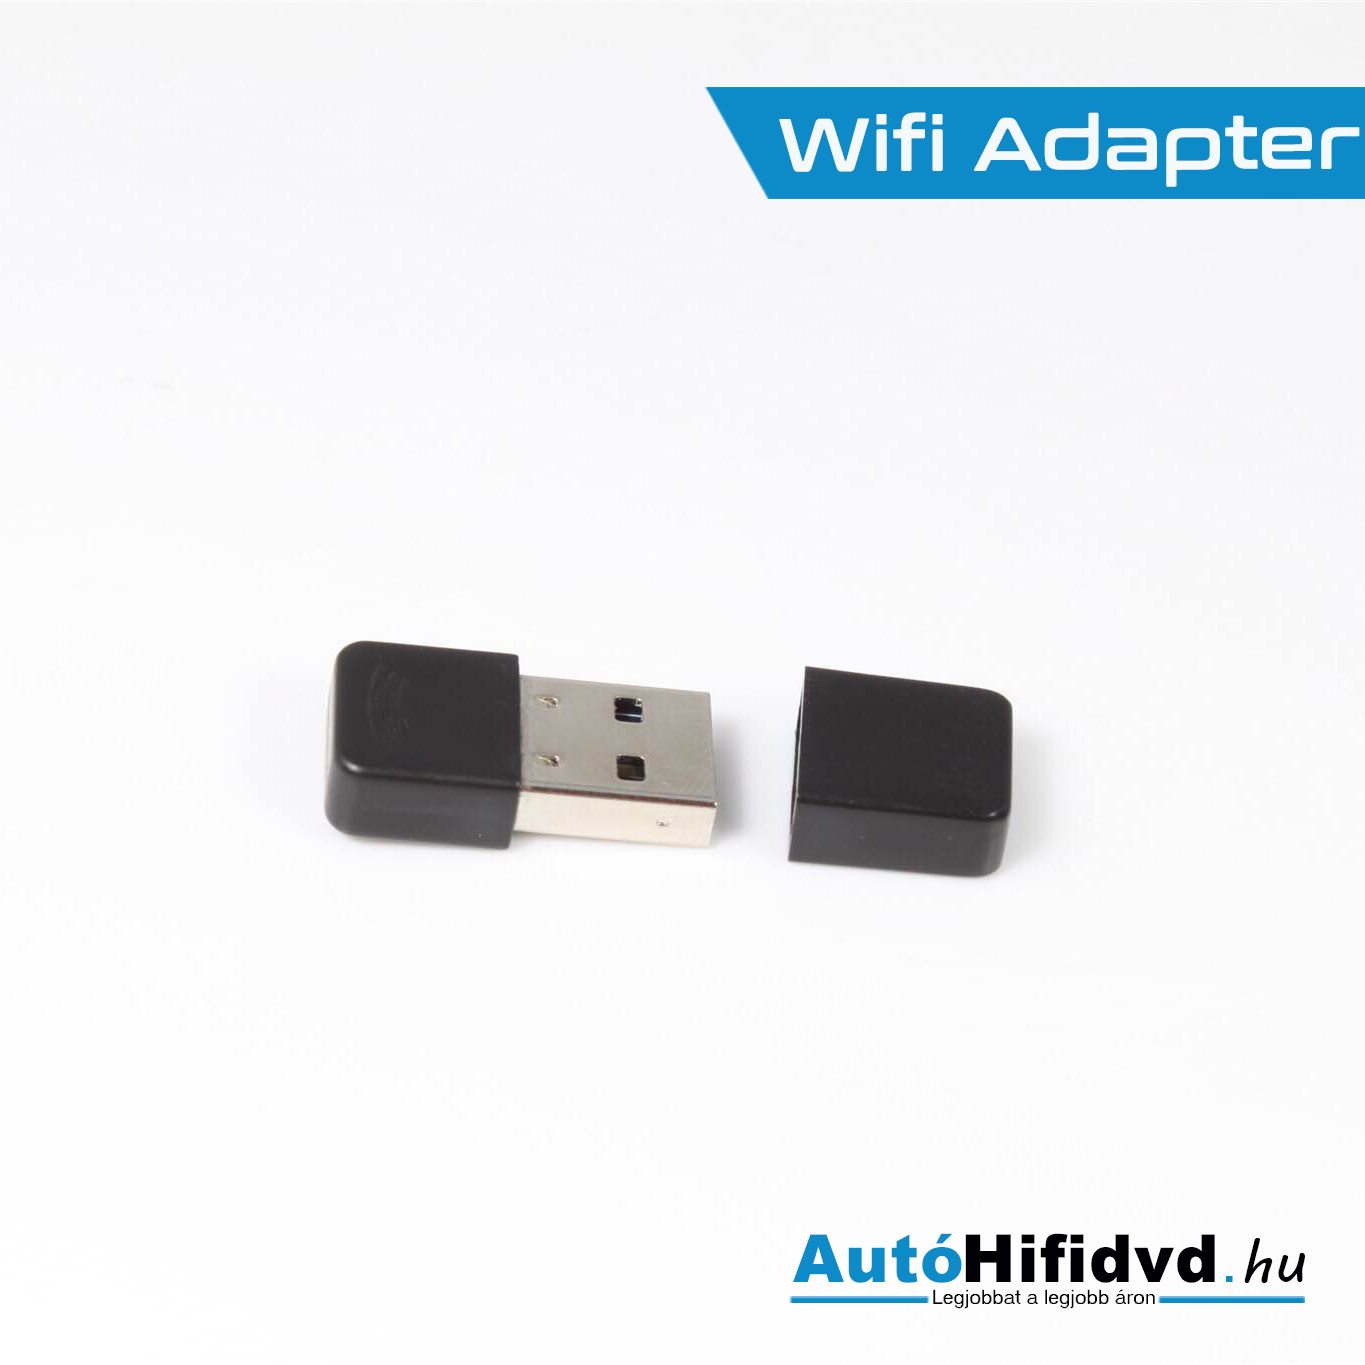 www.autohifidvd.hu /autóhifi, márka specifikus autós multimédia/Új, Mini WiFi Internet USB Adapter Dongle